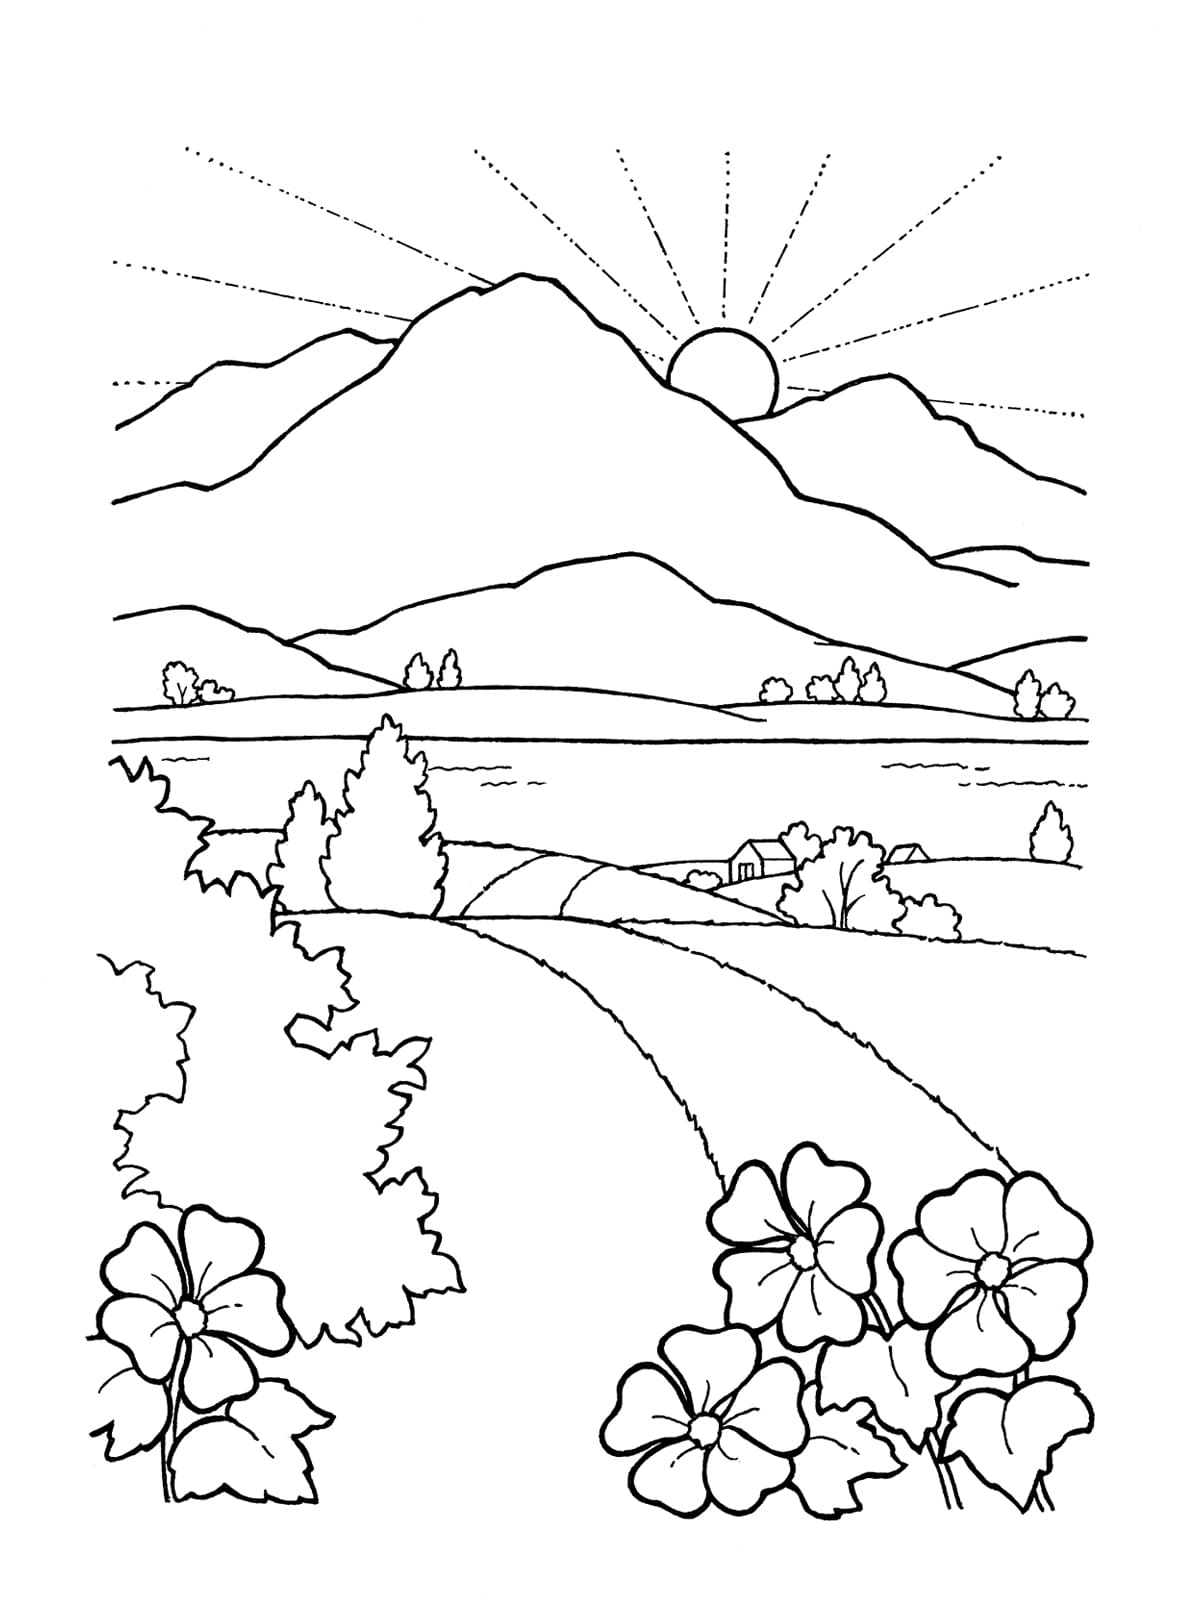 coloring image sunset free adult coloring pages sunset k5 worksheets in 2019 image sunset coloring